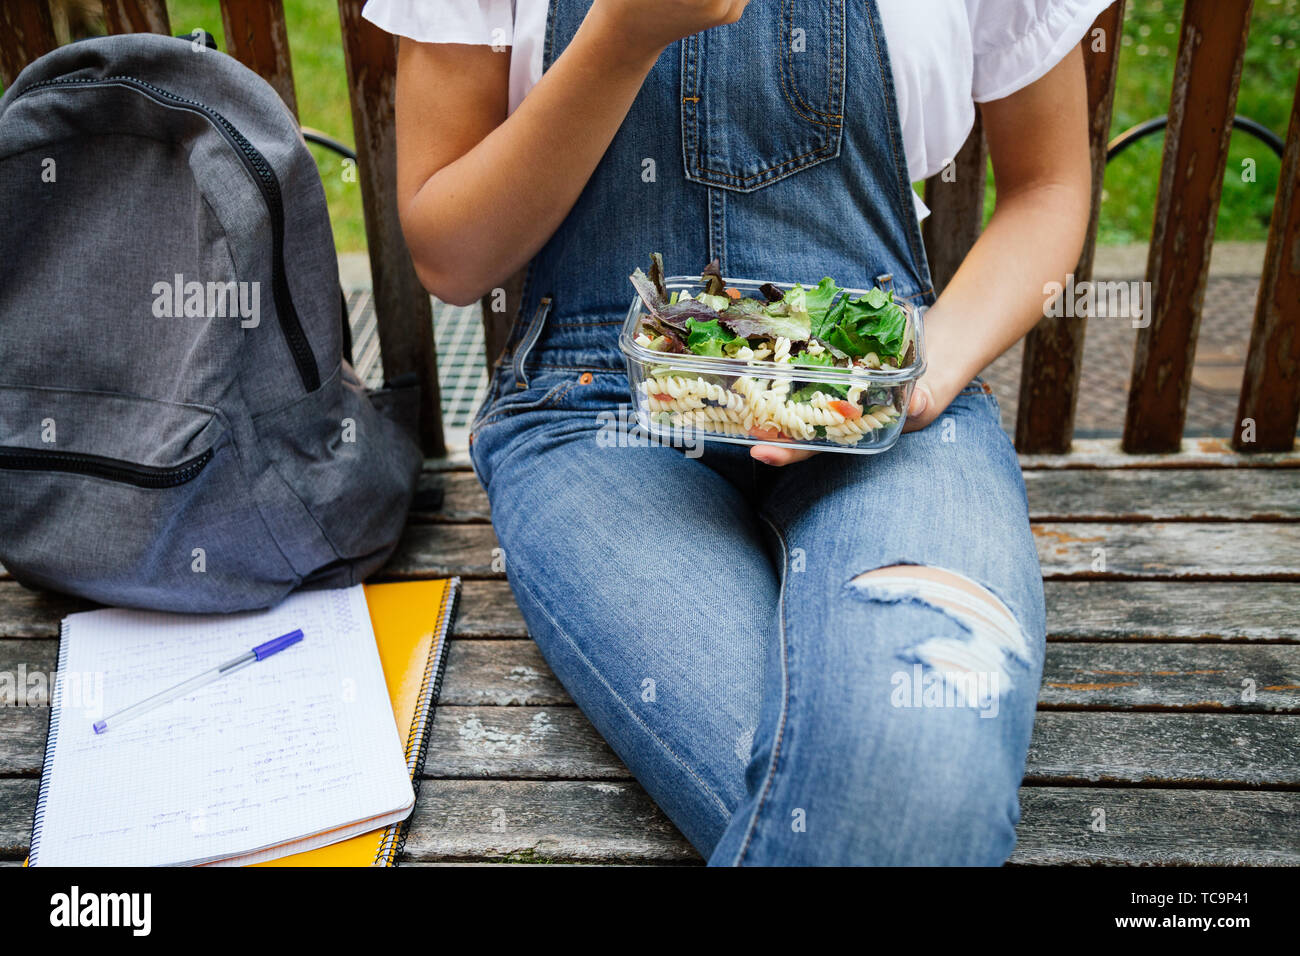 Midsection portrait of a student girl sitting in a bench while eating healthy salad with pasta in a glass lunch box Stock Photo